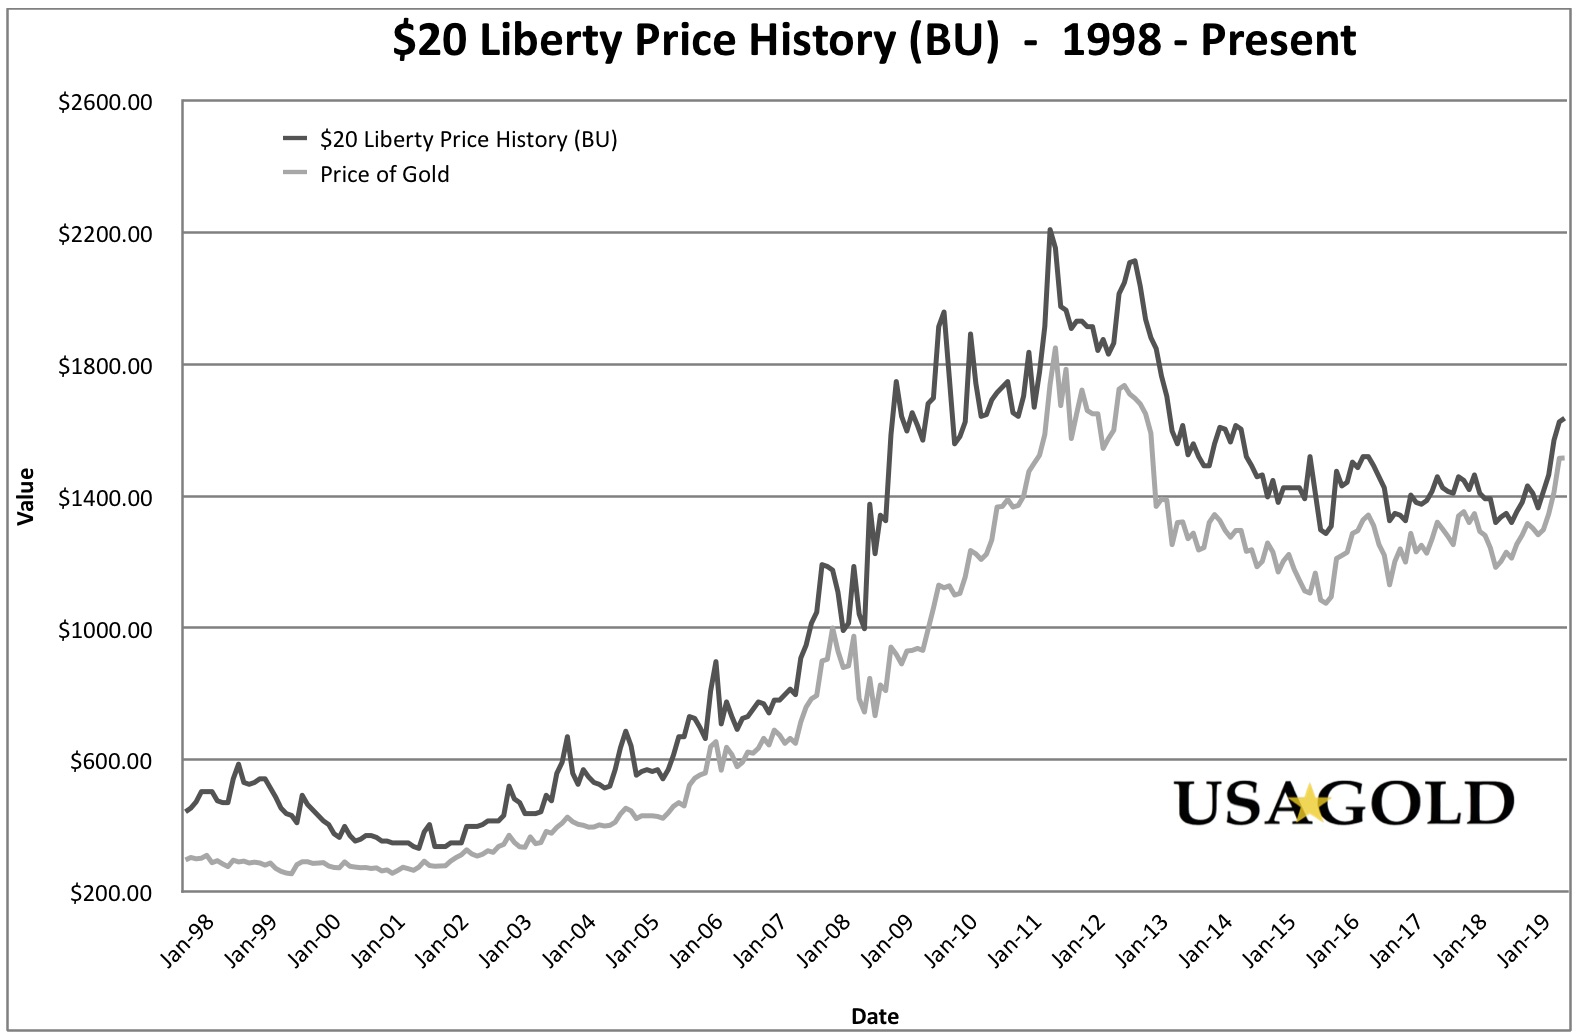 $20 Liberty (BU) Price History Graph (20 Year), shown with the price of spot gold for the same period.